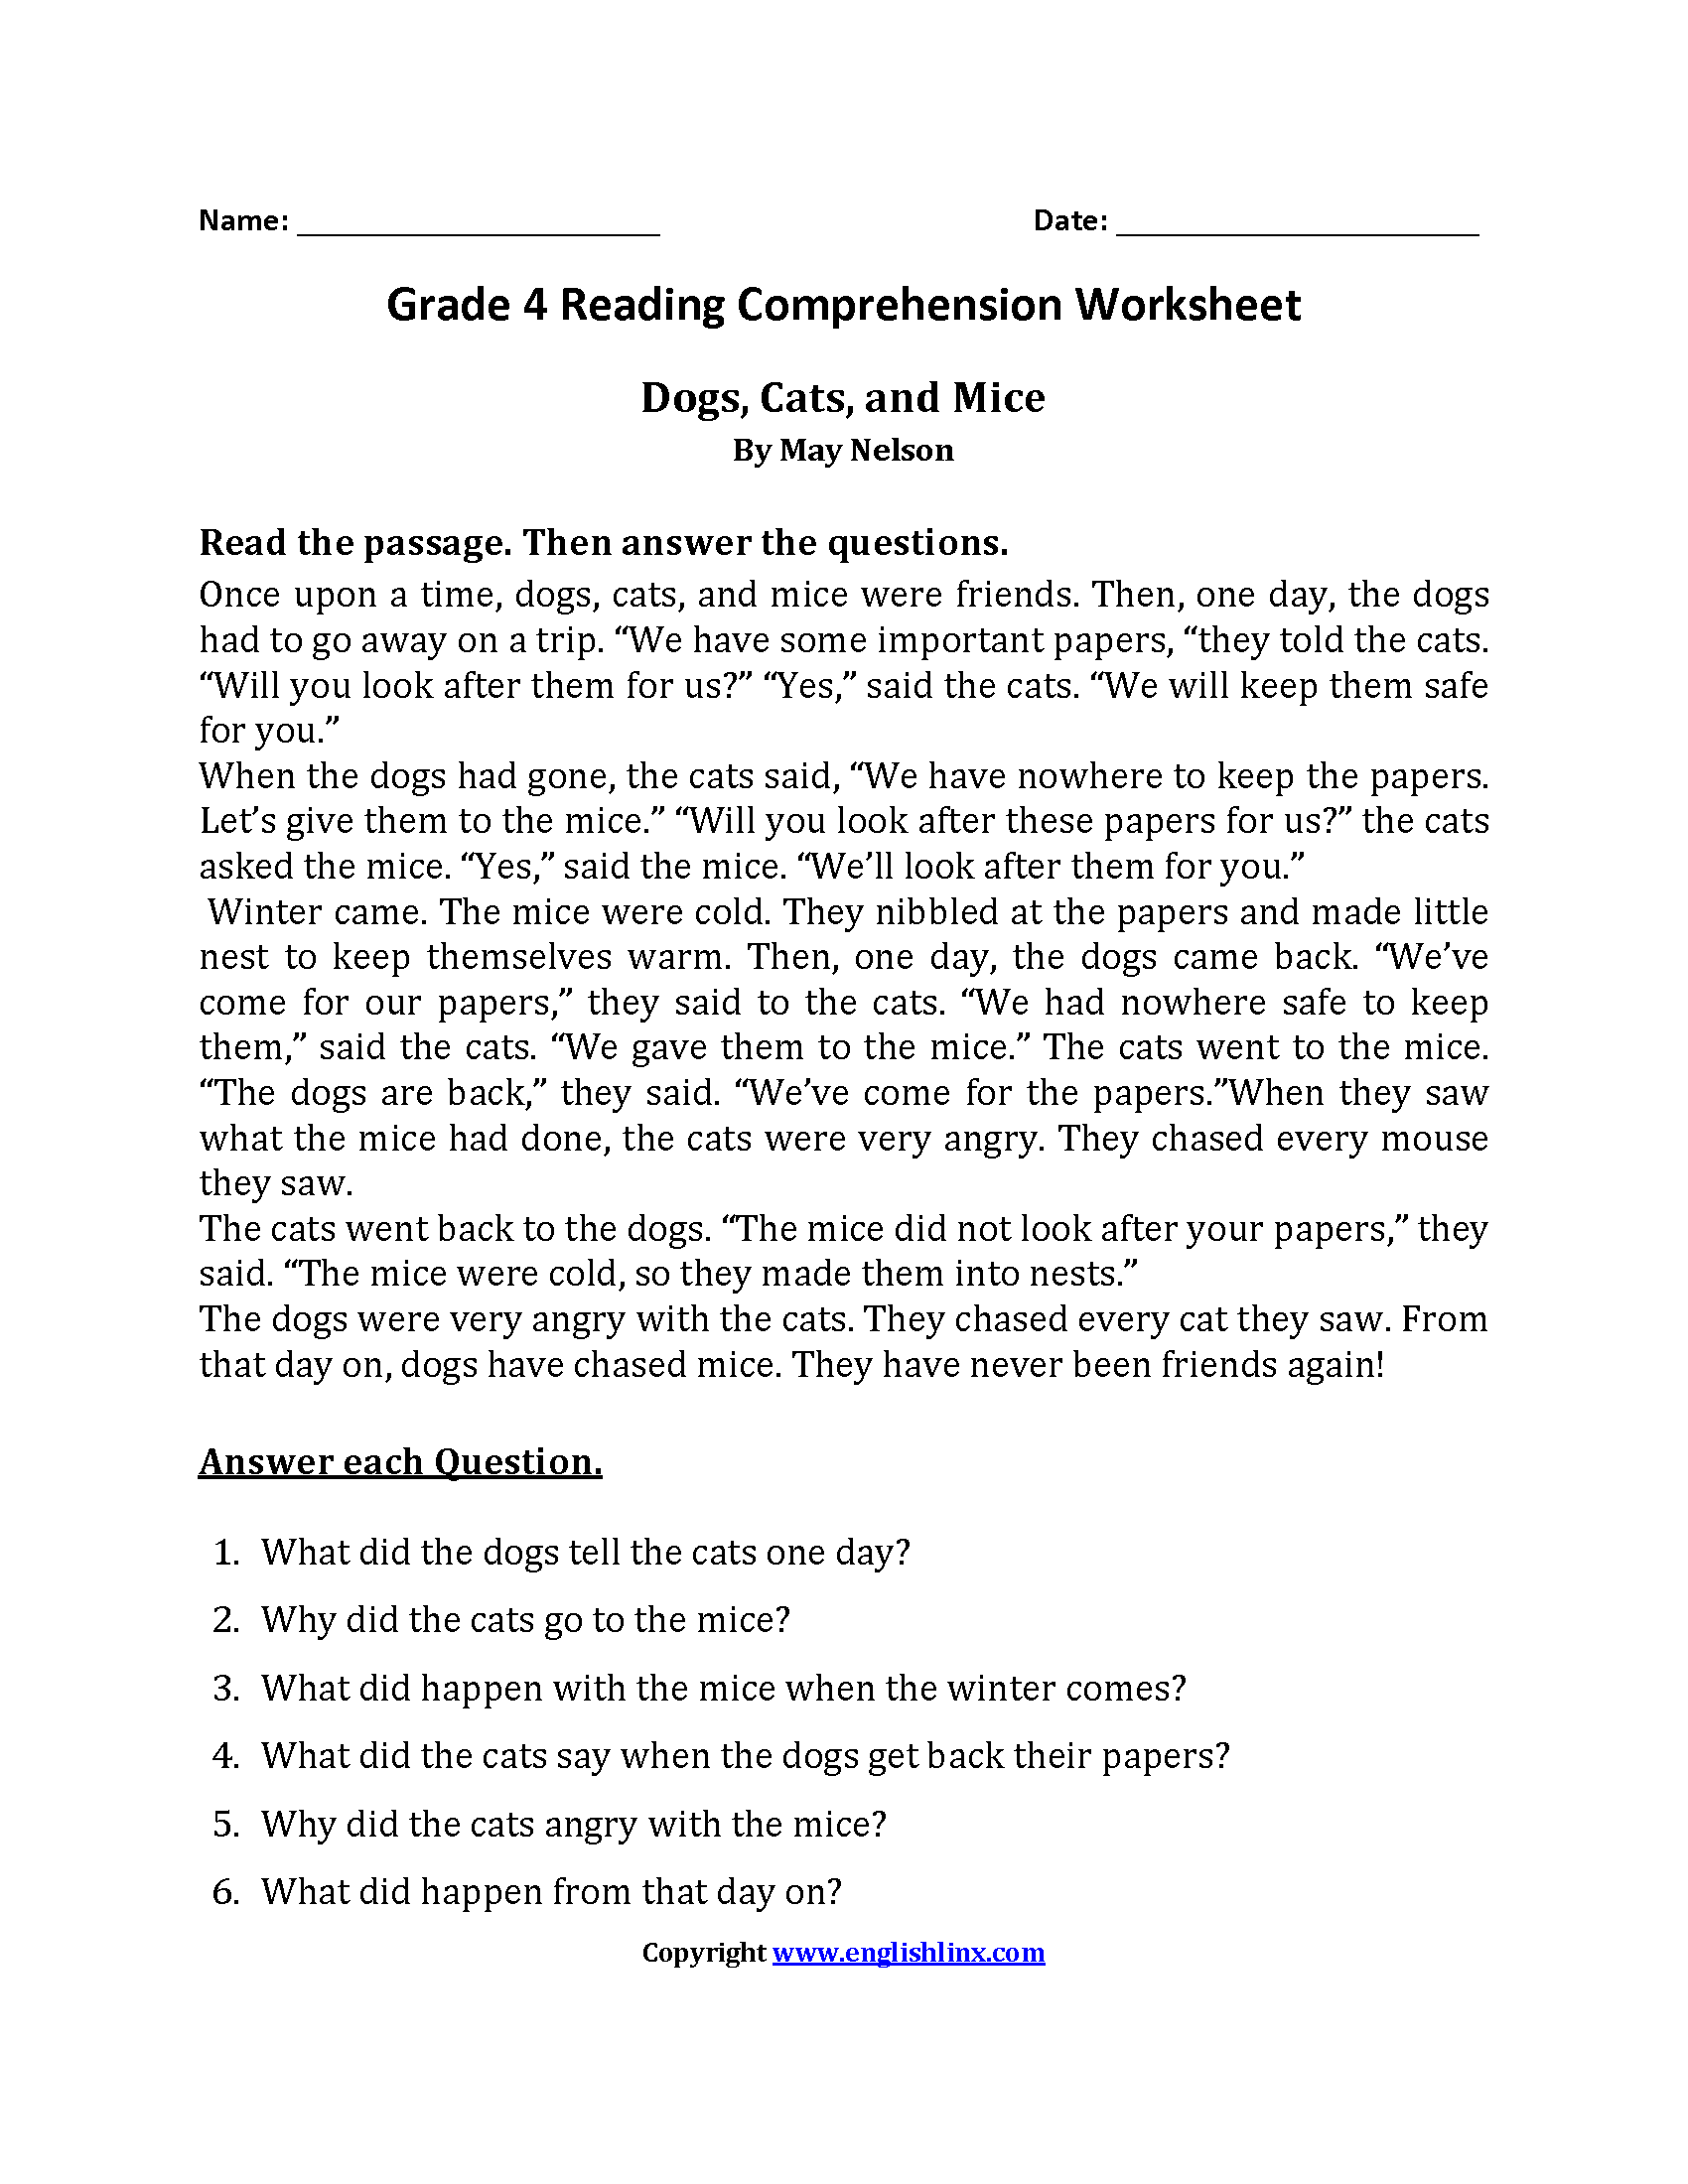 Worksheets Reading Comprehension Worksheets 4th Grade reading worksheets fourth grade worksheets